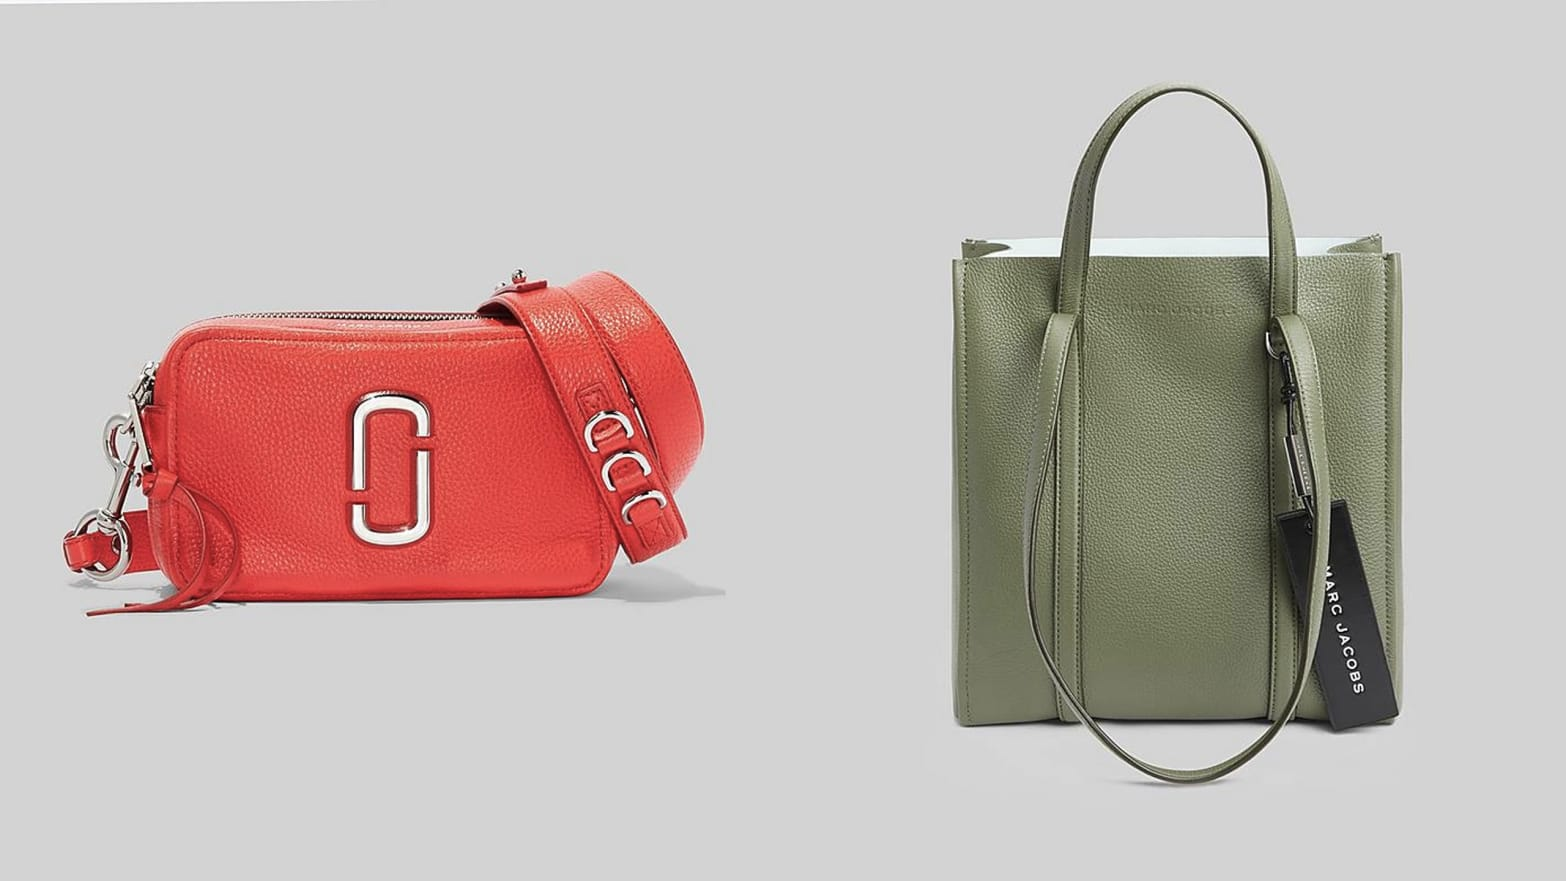 Take 40% Off Marc Jacobs Bags, Jackets, and More